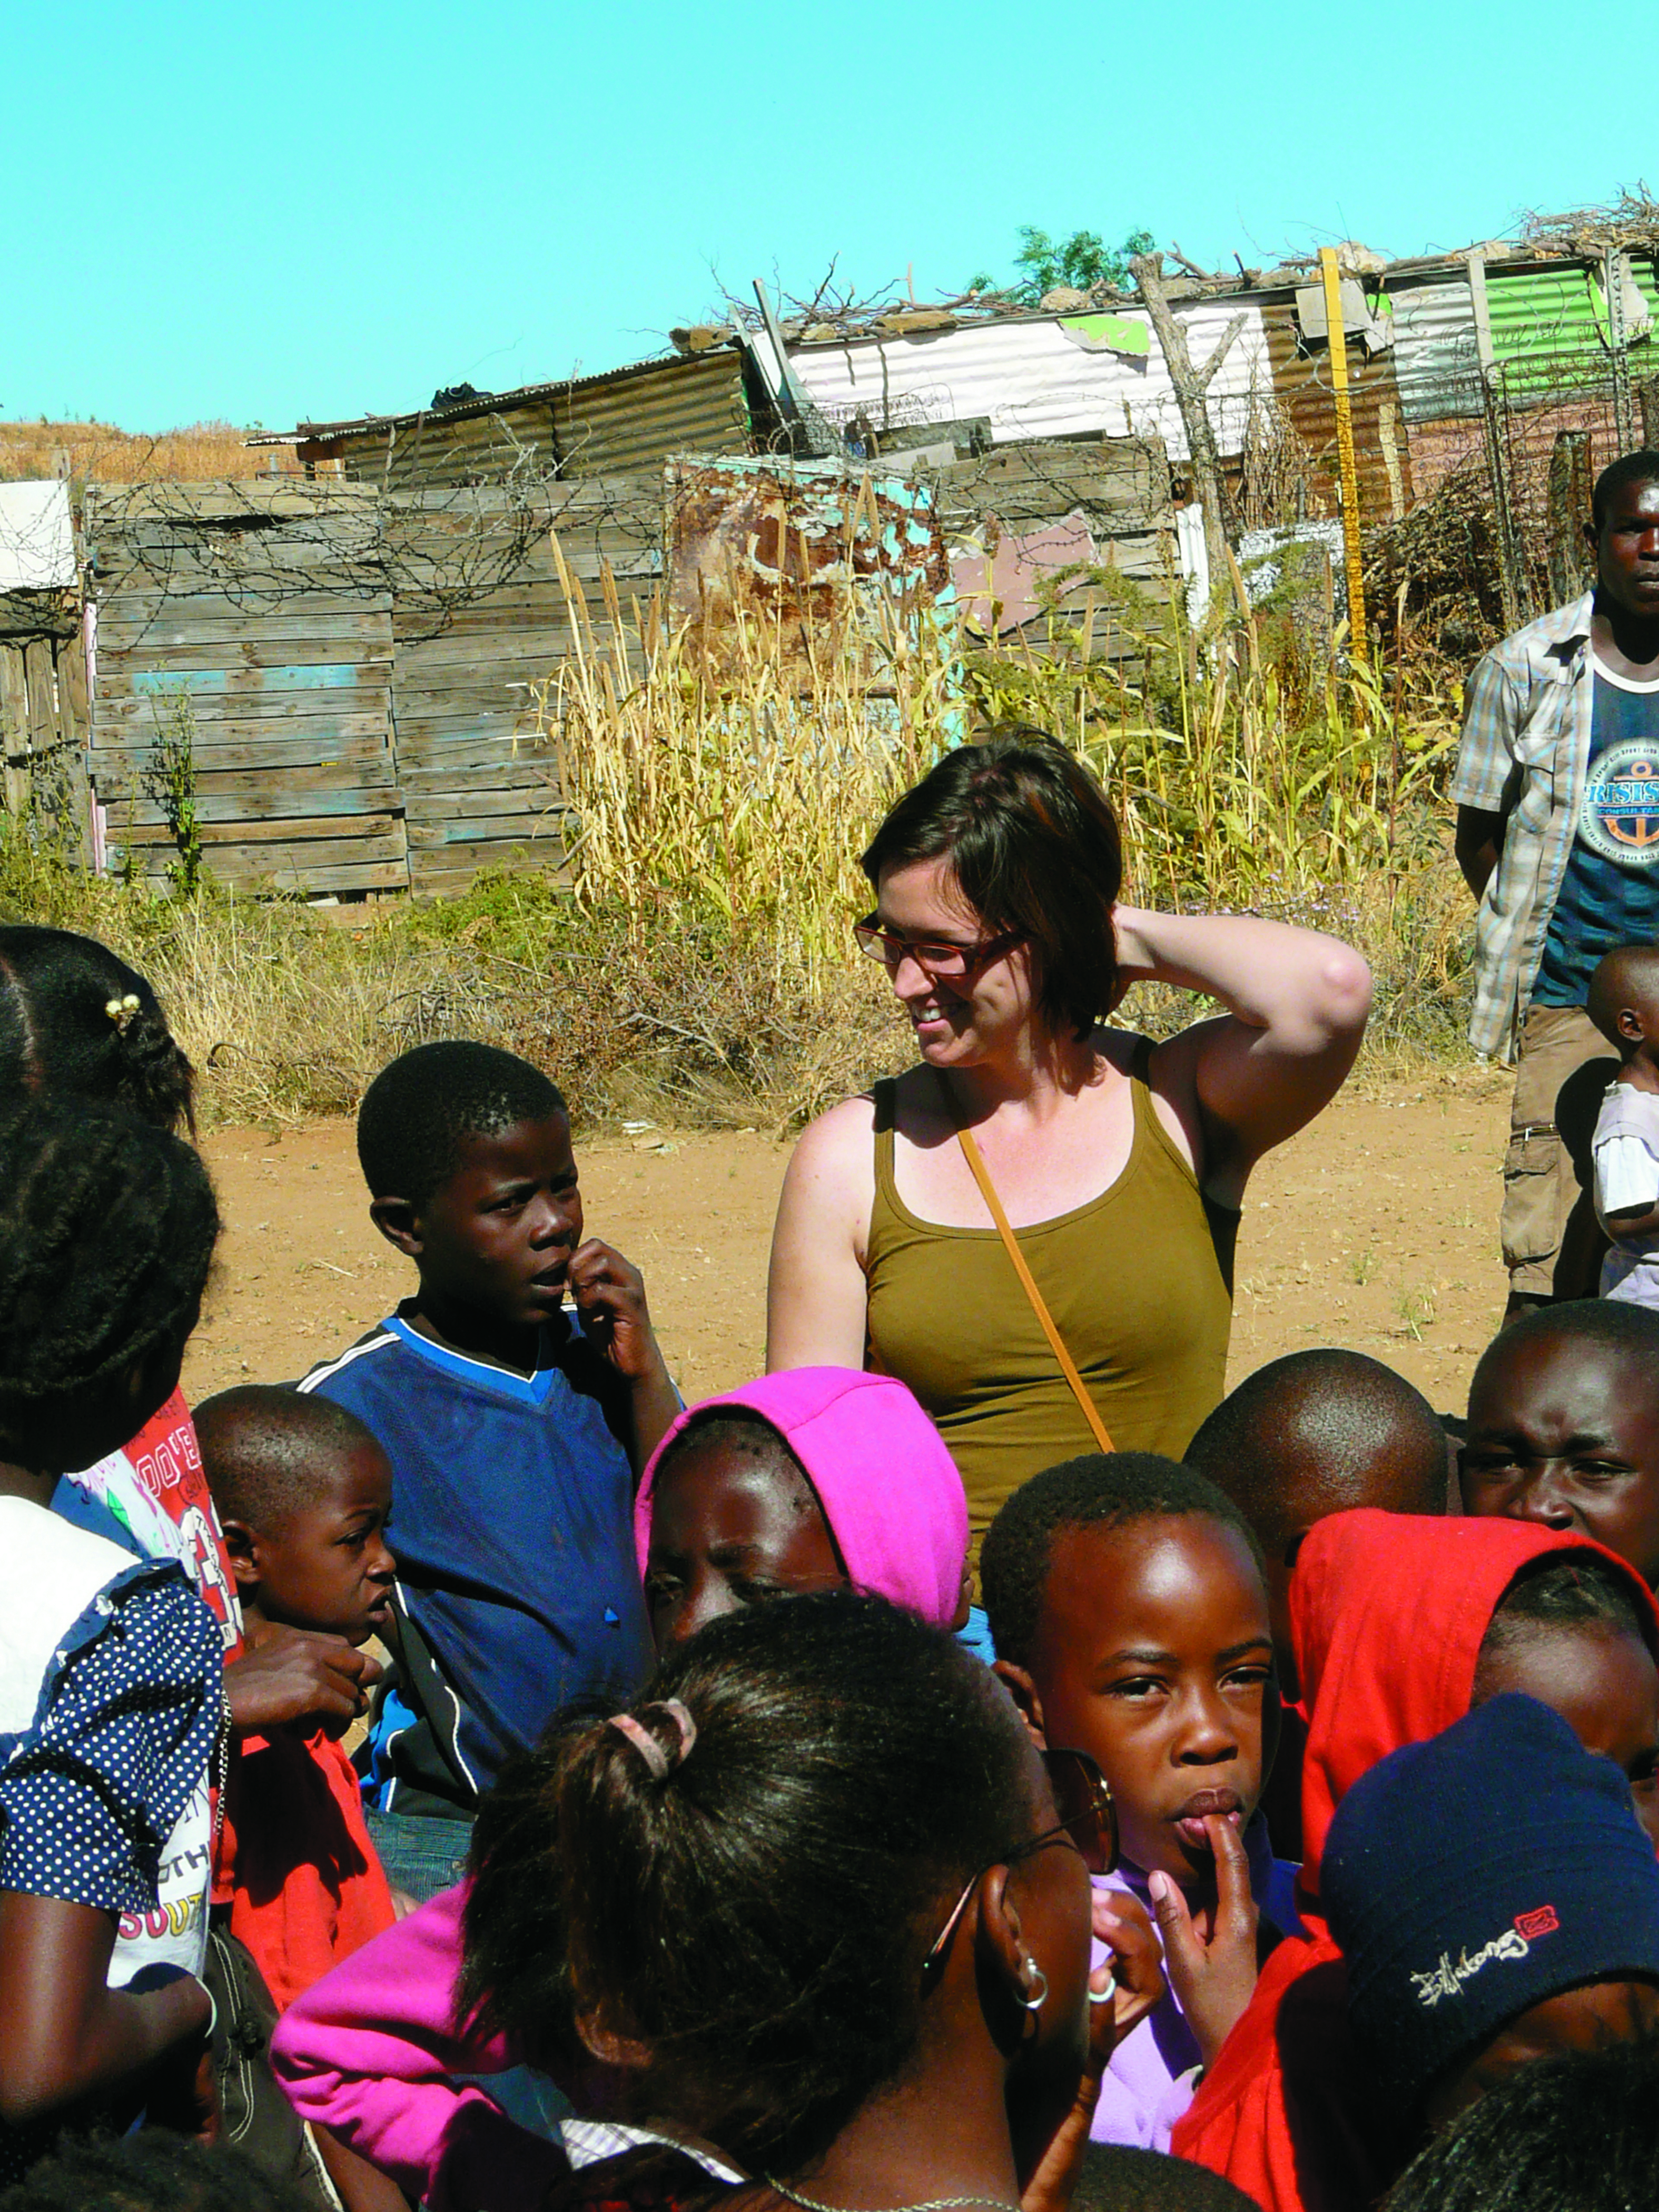 Erin Munsch with a group of children at a Kids-Soup Kitchen outreach event in Katutura, a poor district of Windhoek.